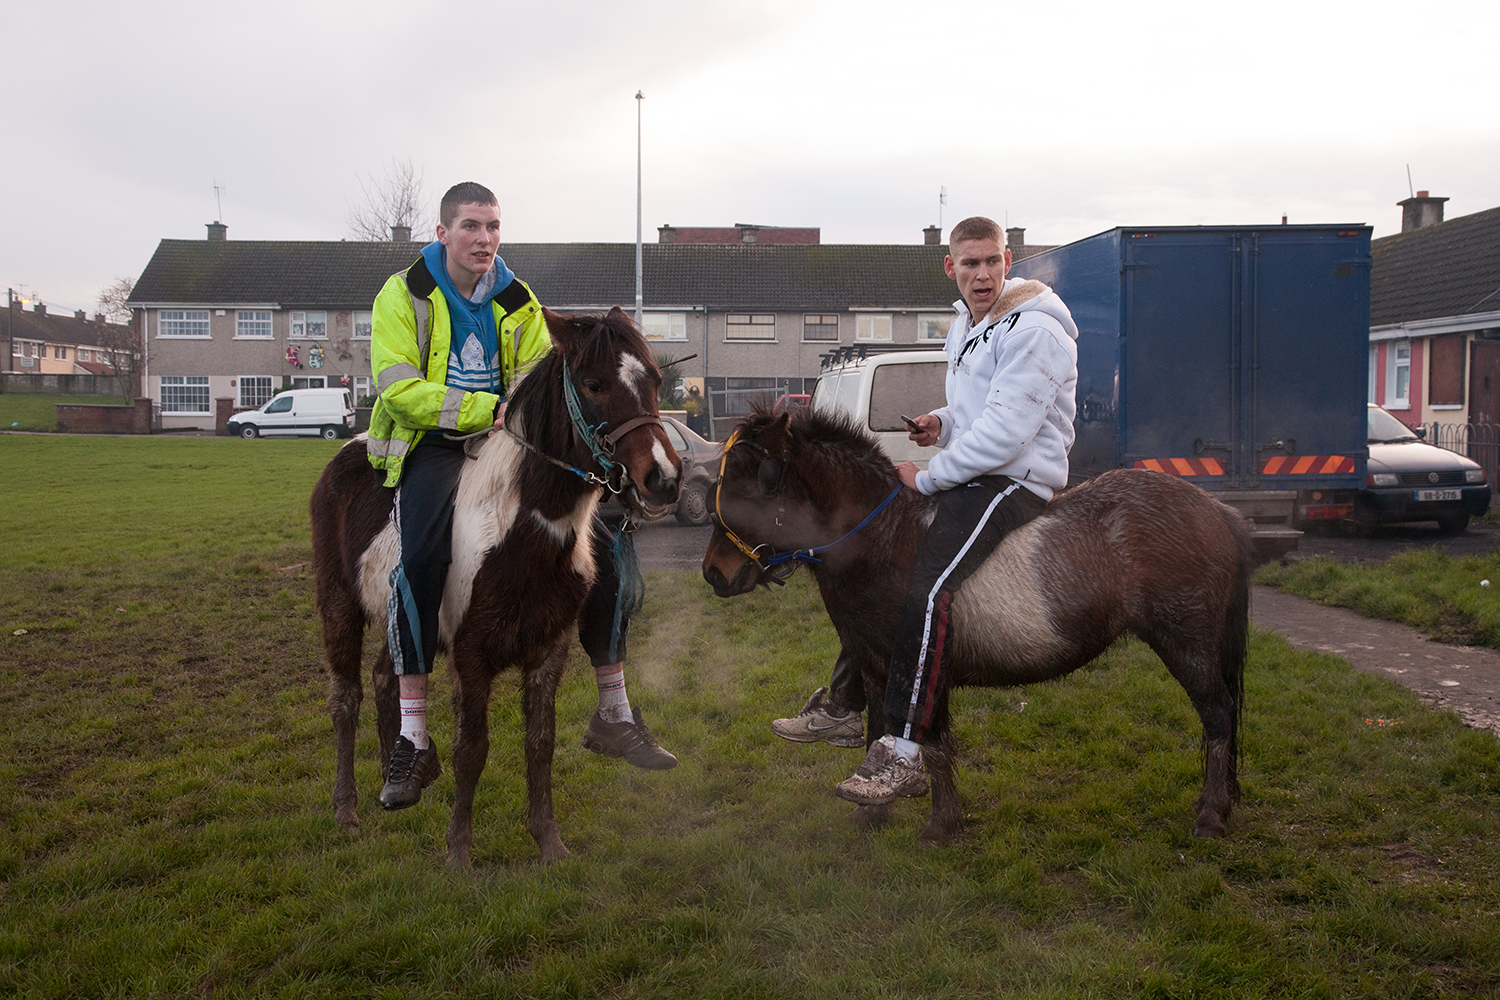 A documentary photograph of two older teenager boys sitting on ponies in moyross, Limerick, Ireland